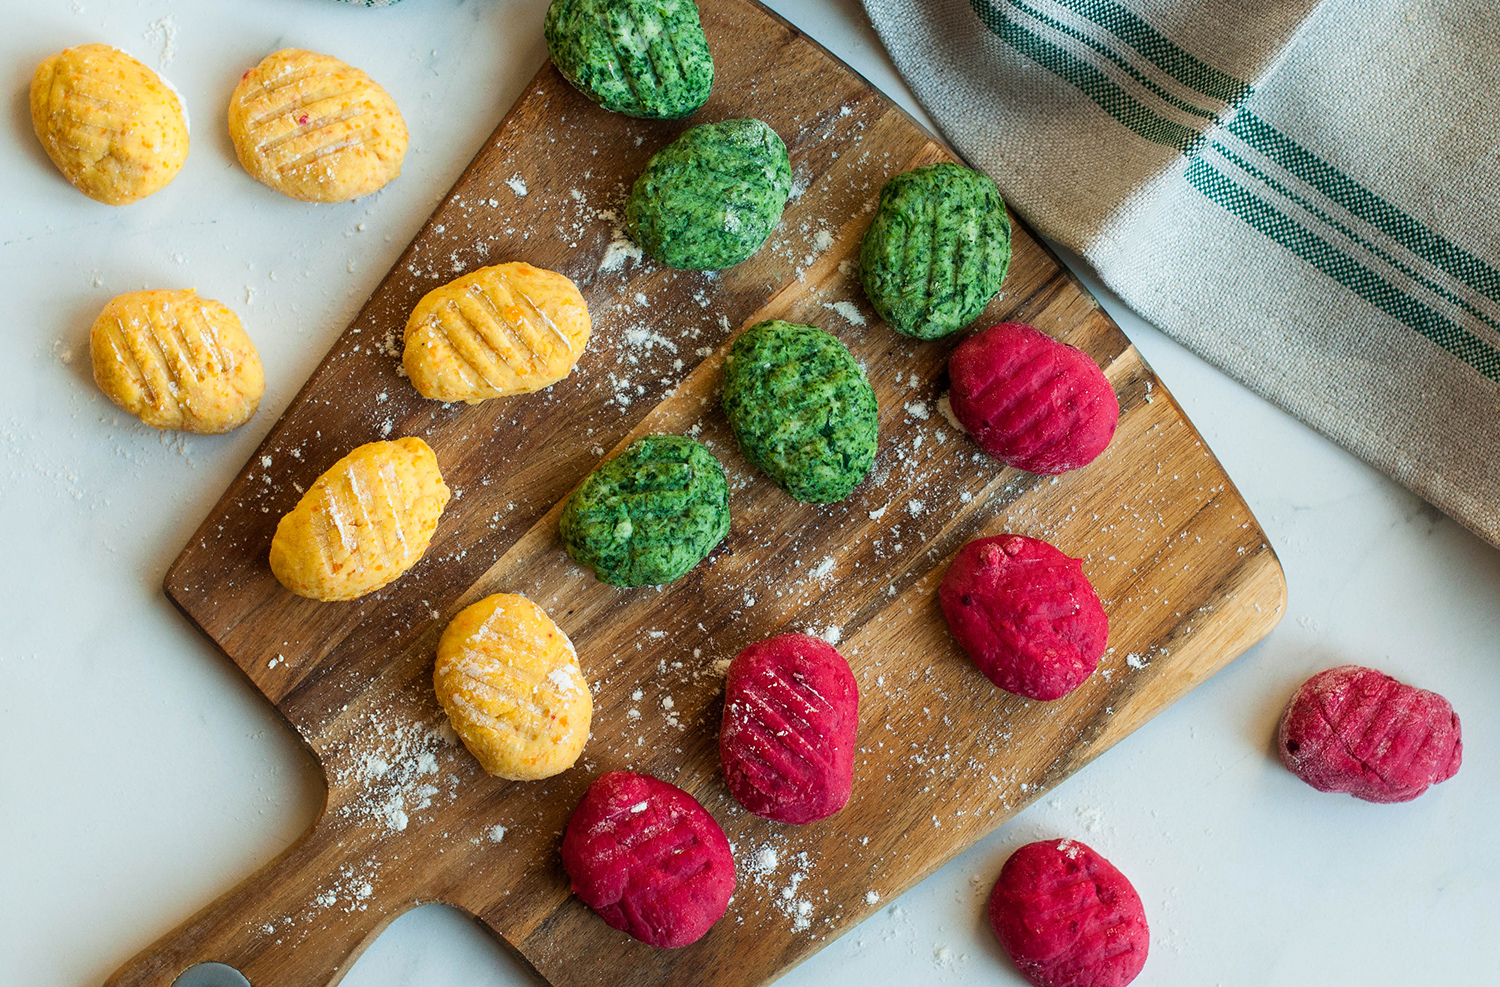 homemade-gnocchi-ricotta-spinach-carrot-beetroot-lea-lou-5